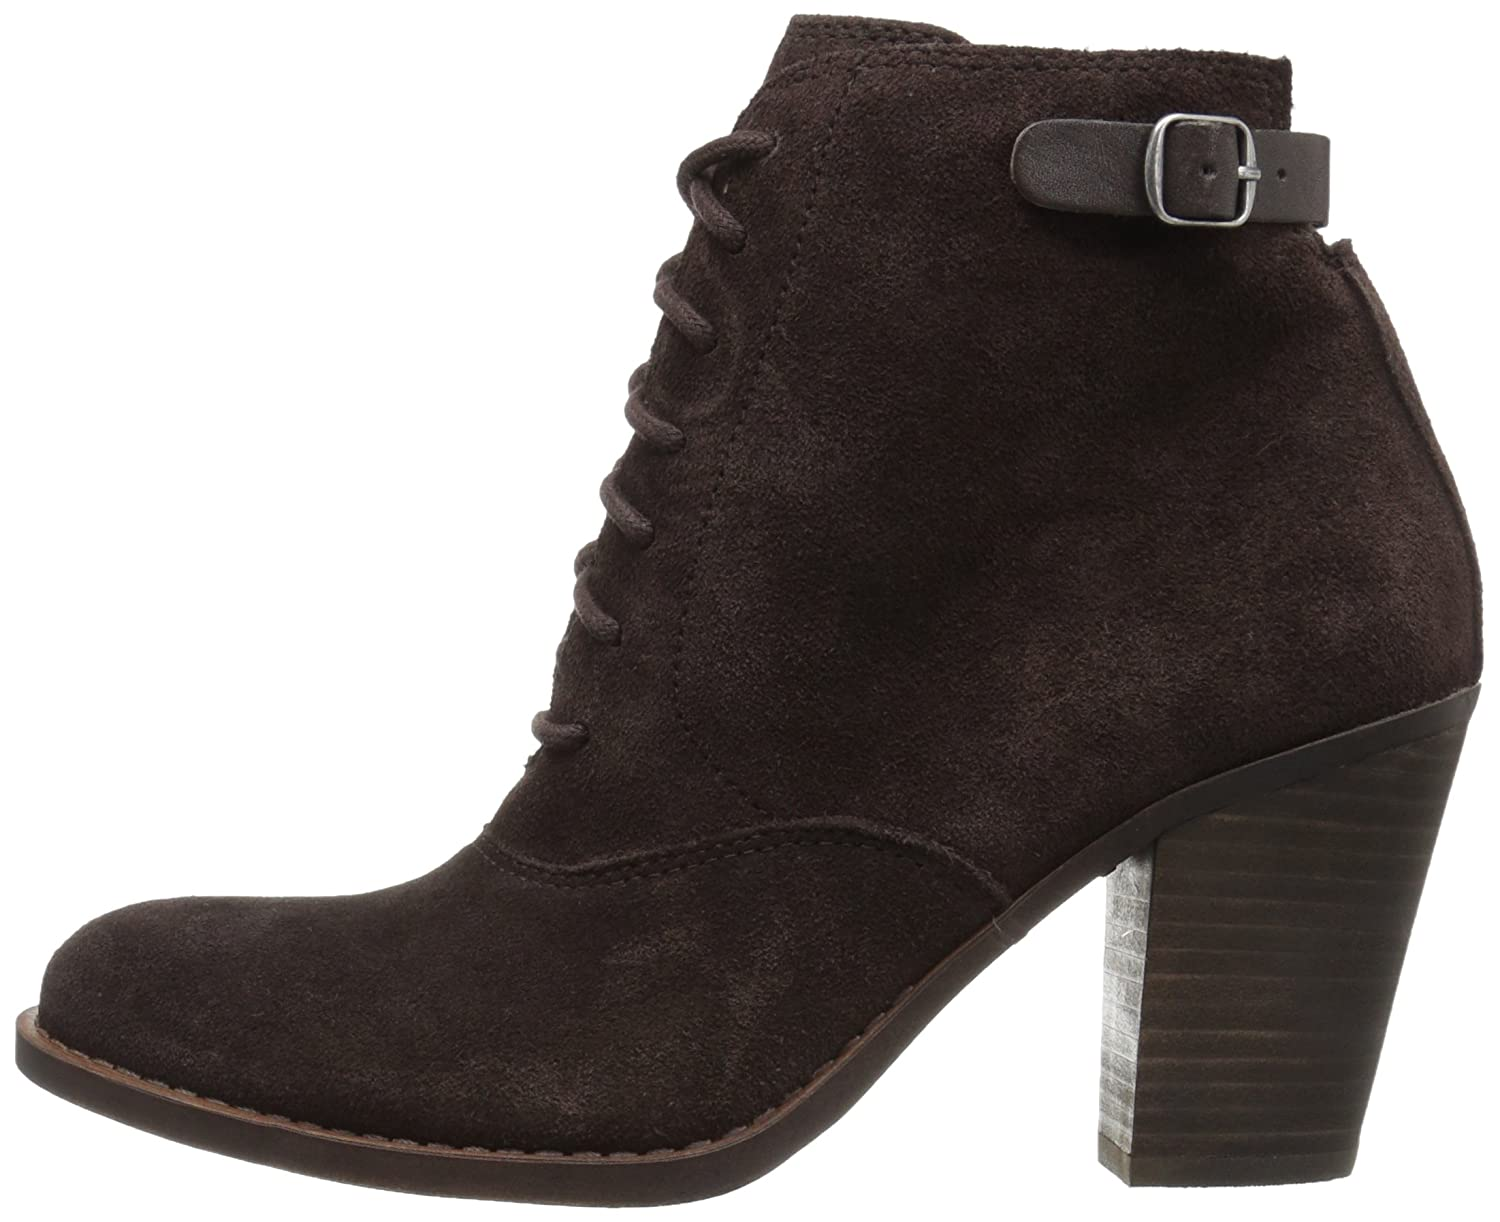 Lucky Brand Women's 7.5 Echoh Ankle Bootie B01FXC2A7K 7.5 Women's B(M) US|Java 2c5604